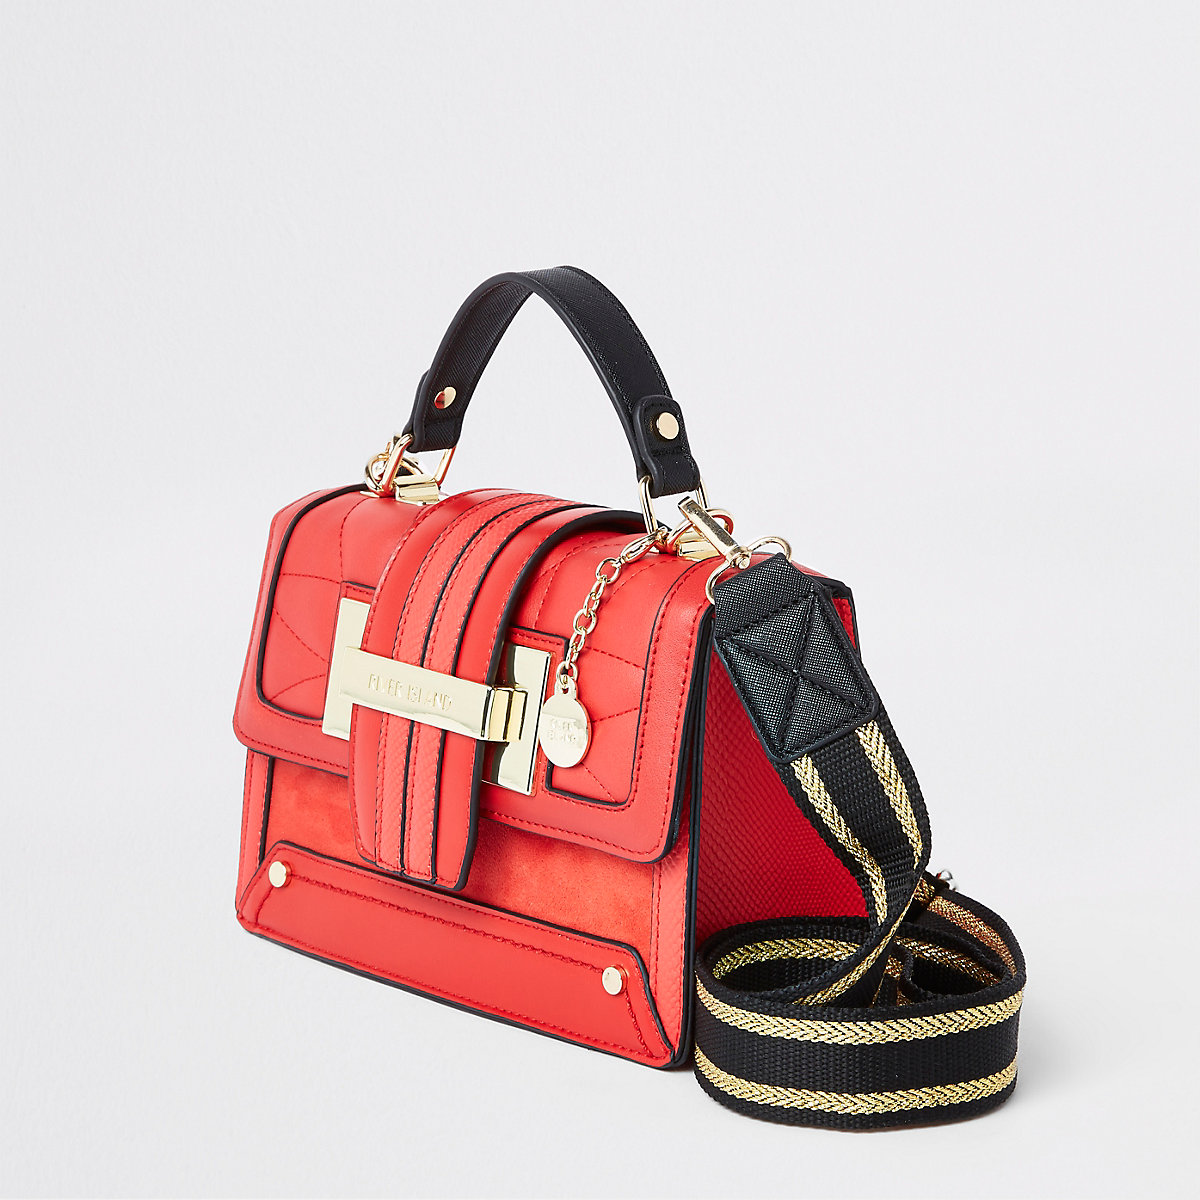 Bright red quilted satchel cross body bag